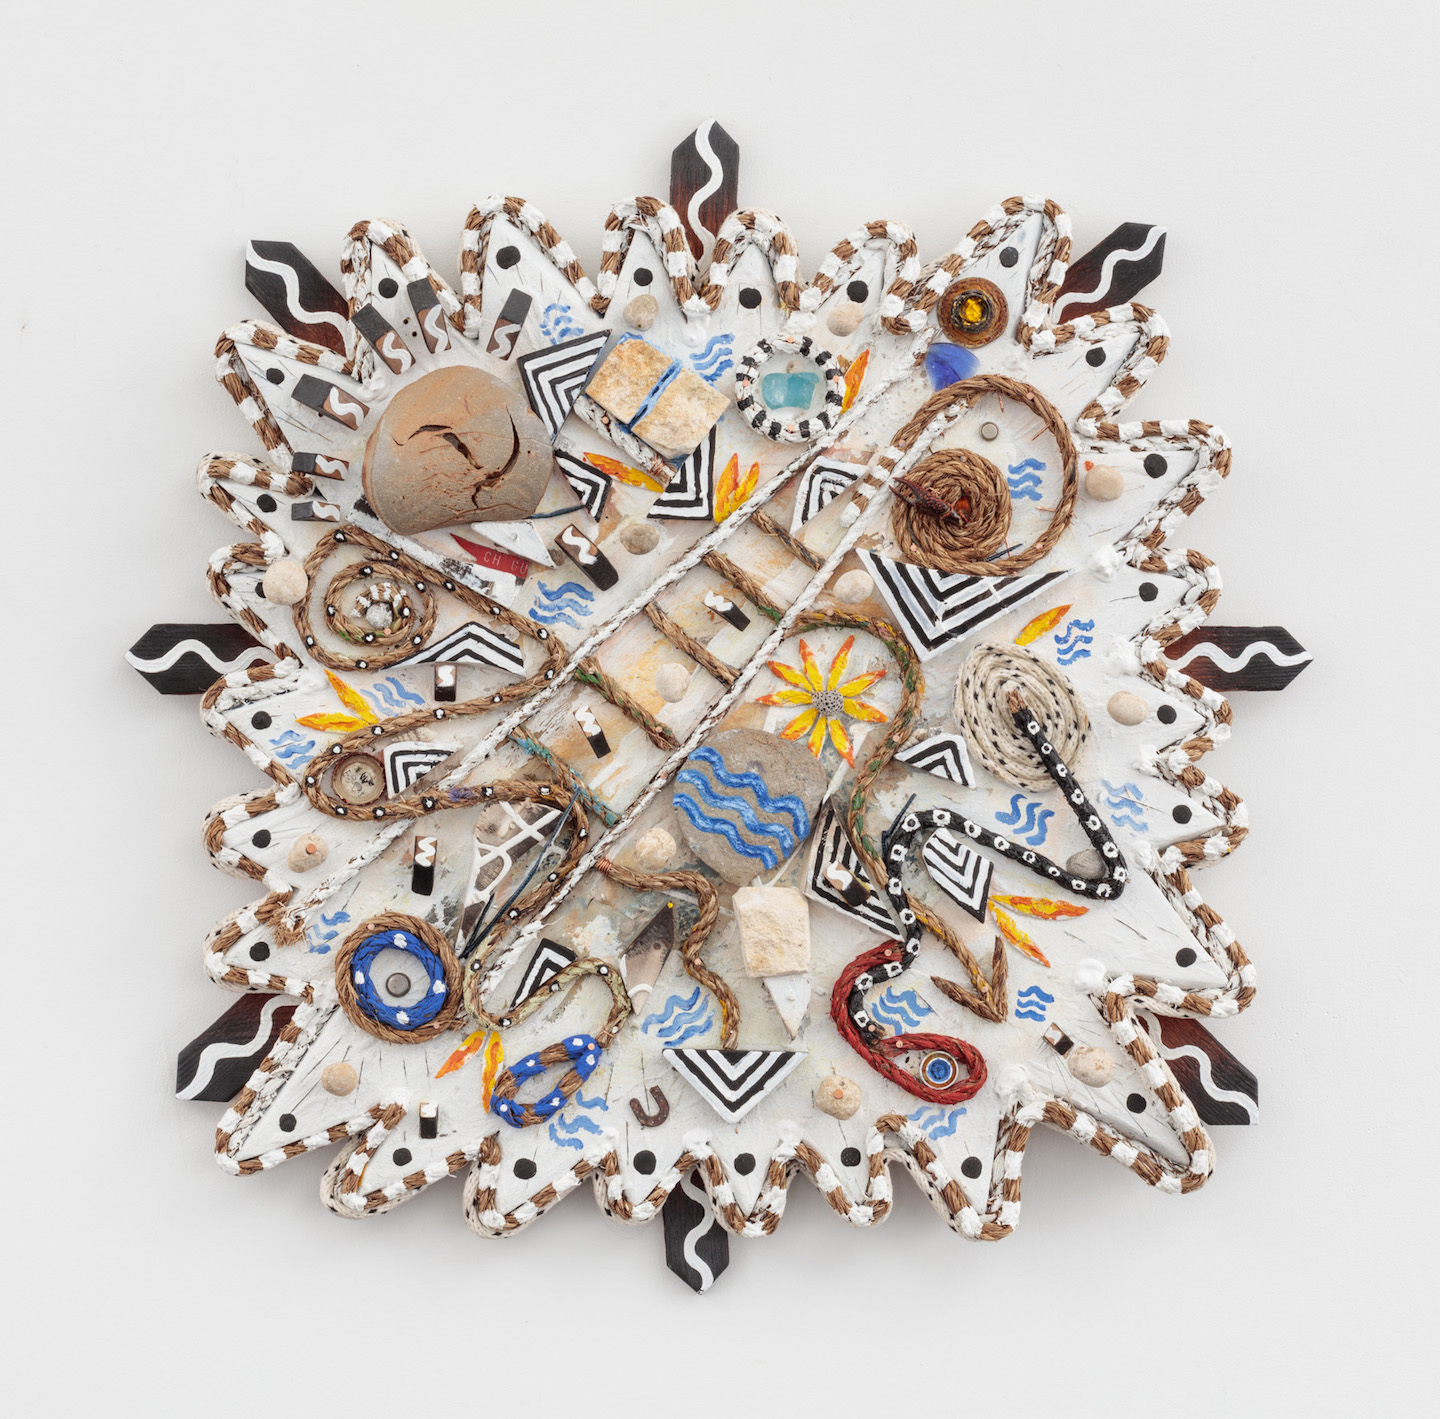 Daniel Rios Rodriguez and Kate Newby,  Passiflora Pirate Utopia , 2018, Oil, acrylic, rope nails, wood and other found materials on wood panel, 29 x 29 inches